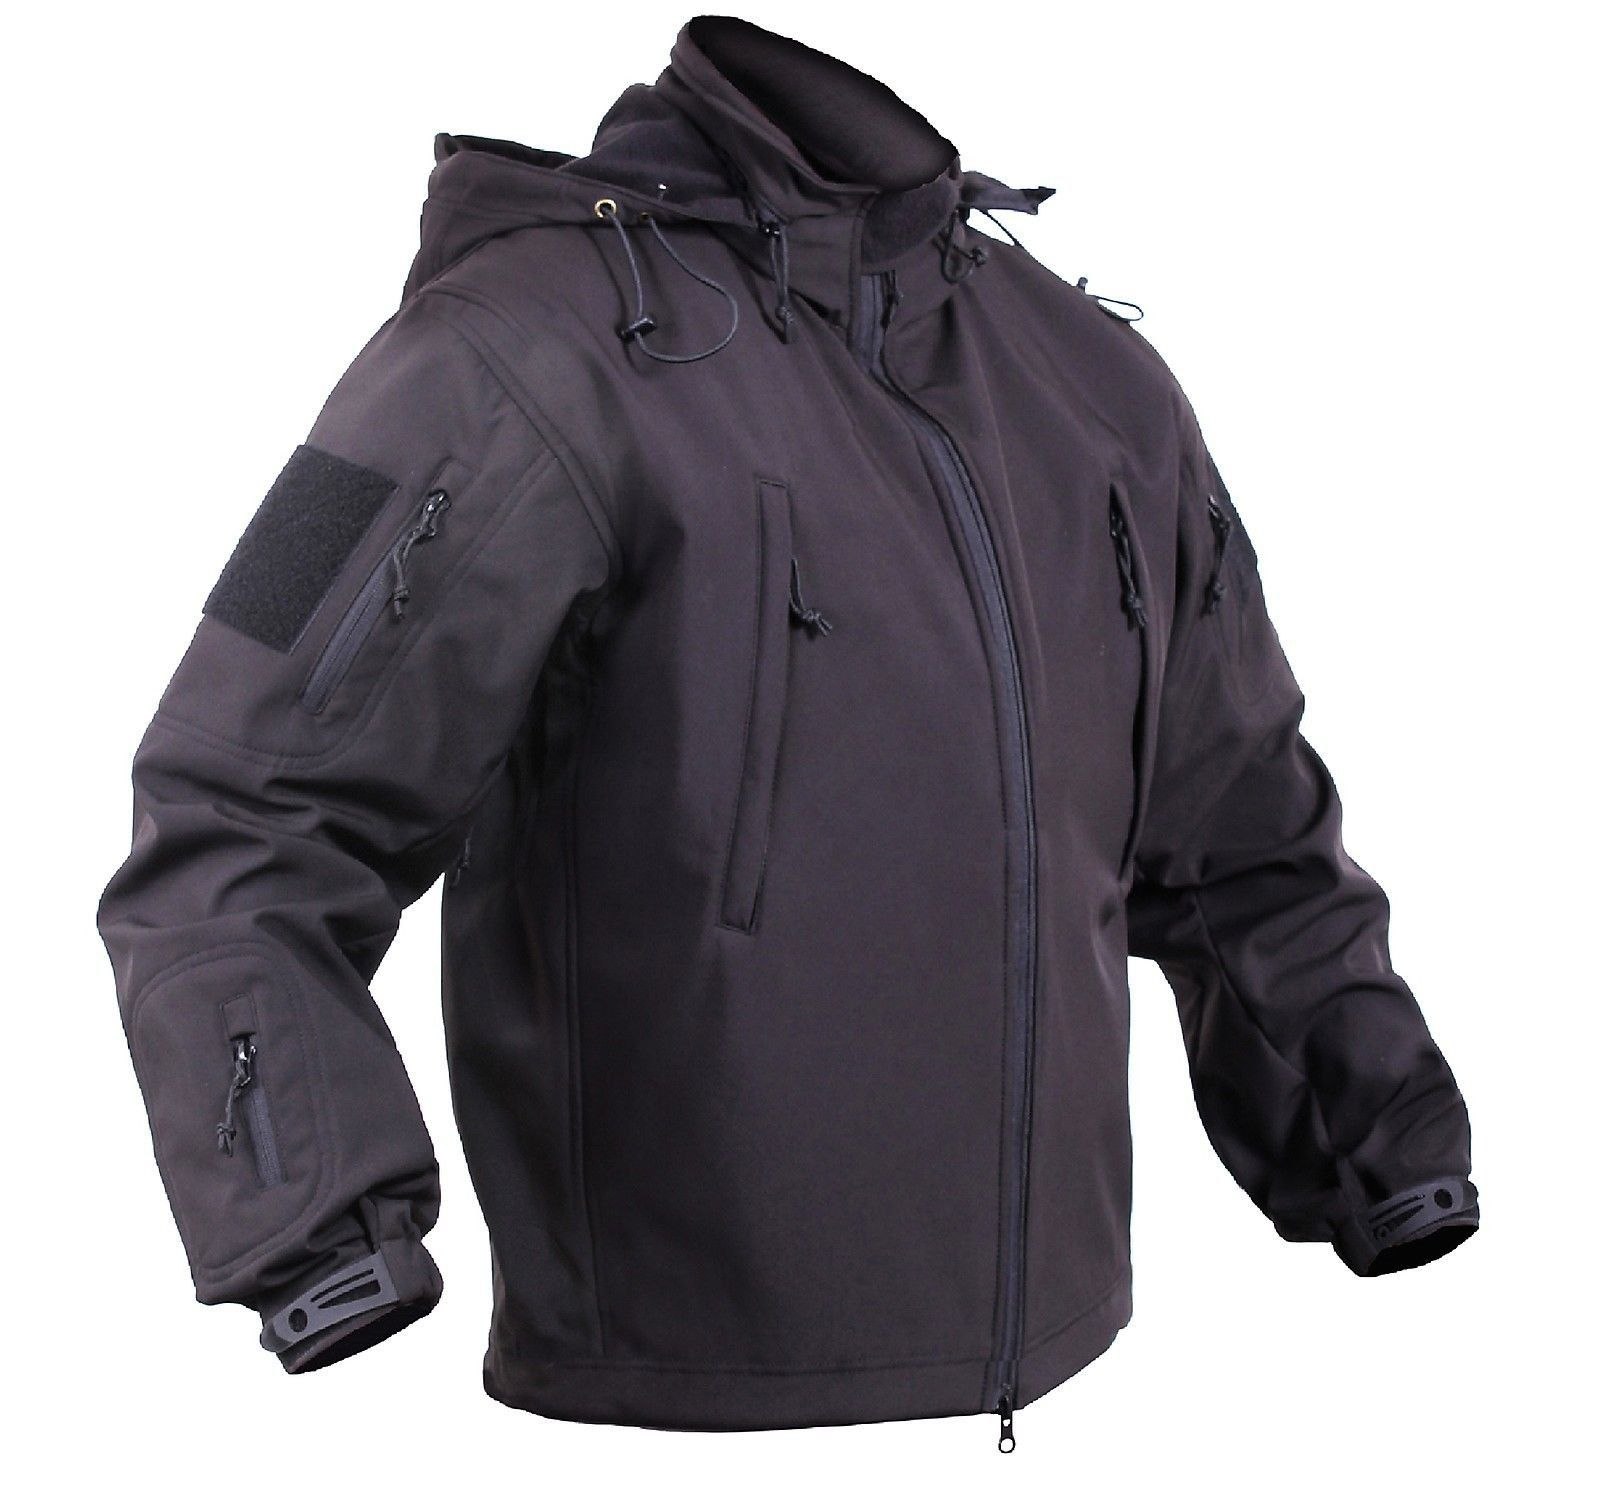 Men s Black Concealed Carry Soft Shell Tactical Jacket Waterproof Coat –  Grunt Force be809d613e4